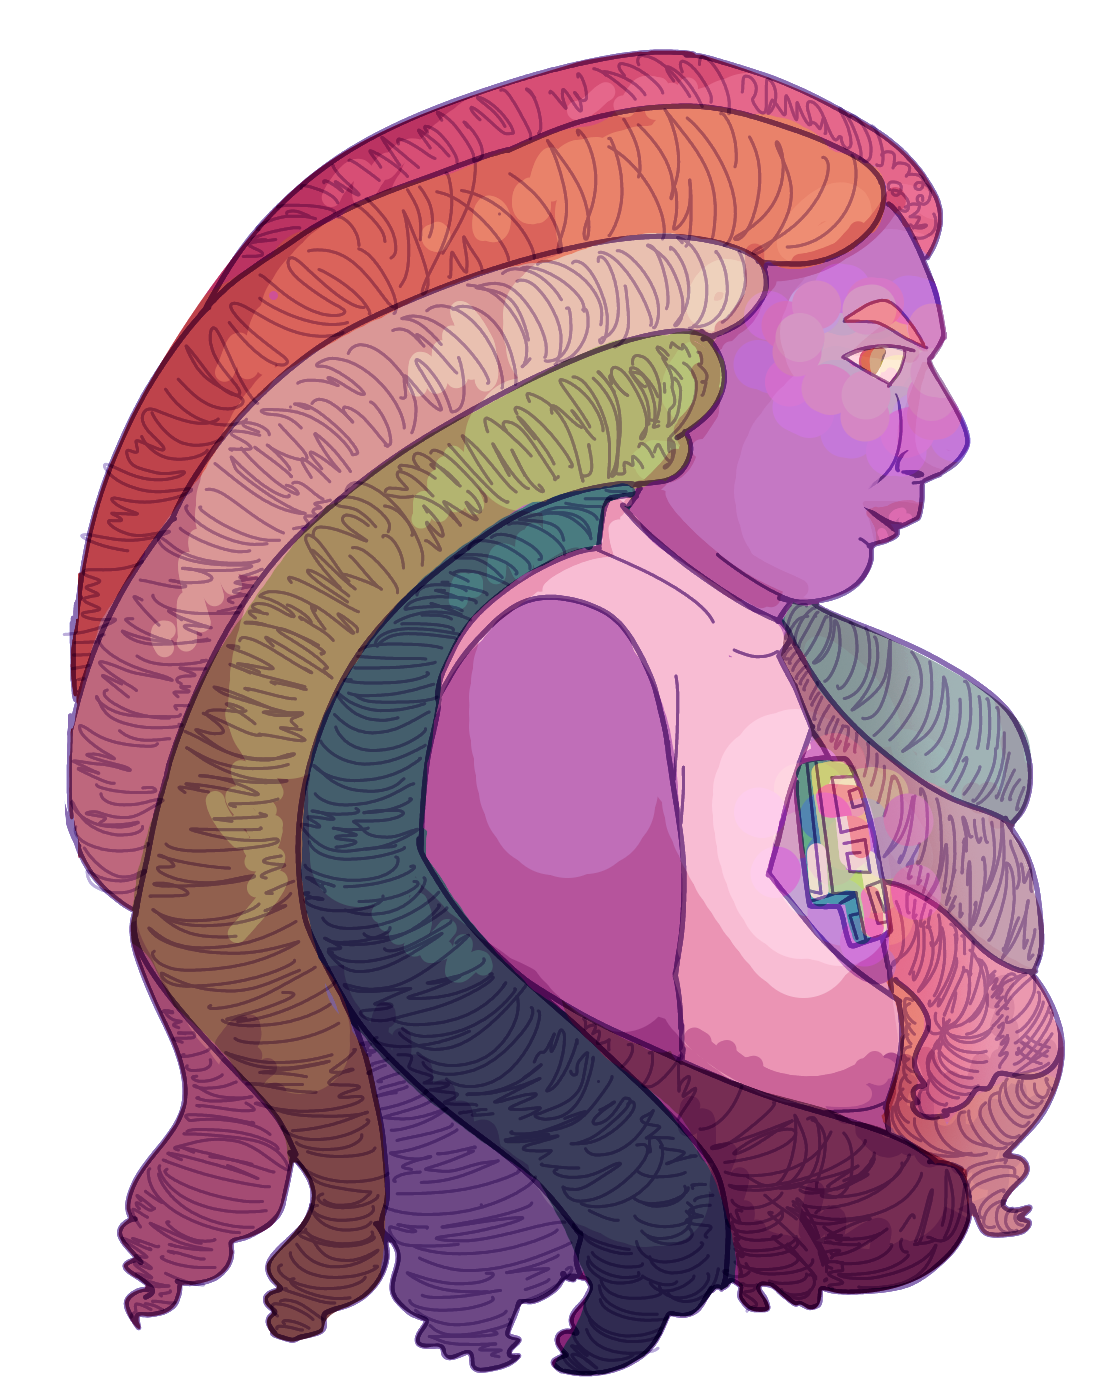 everyone's suggesting that this fabulous haired gem is bismuth and i got all excited